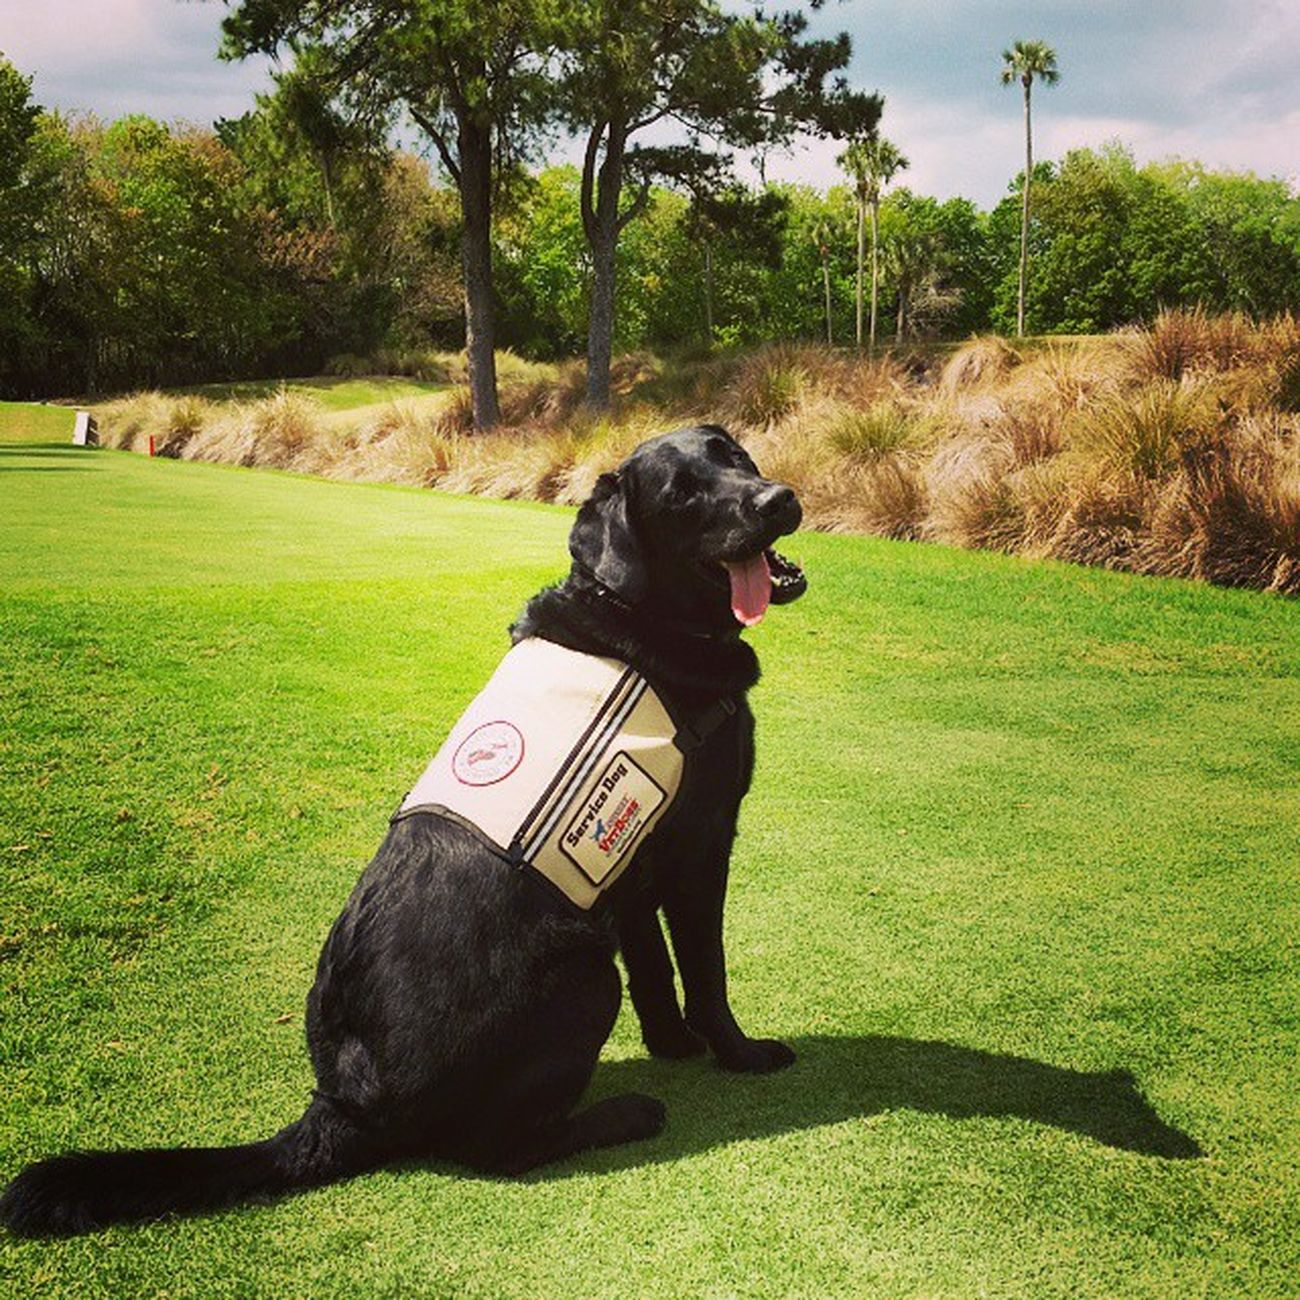 This is Winchester. A Woundedwarriorproject service dog whom greeted us at one of the tee boxes. The 3 veterans and participants of Wwp were just absolutely amazing and inspiring! Thank you for bravery, courage, your service and the rays of light you shined on us today for a short time on the golf course. Awesome TimTebowFoundation WeAllWantedToBringWinchesterHome